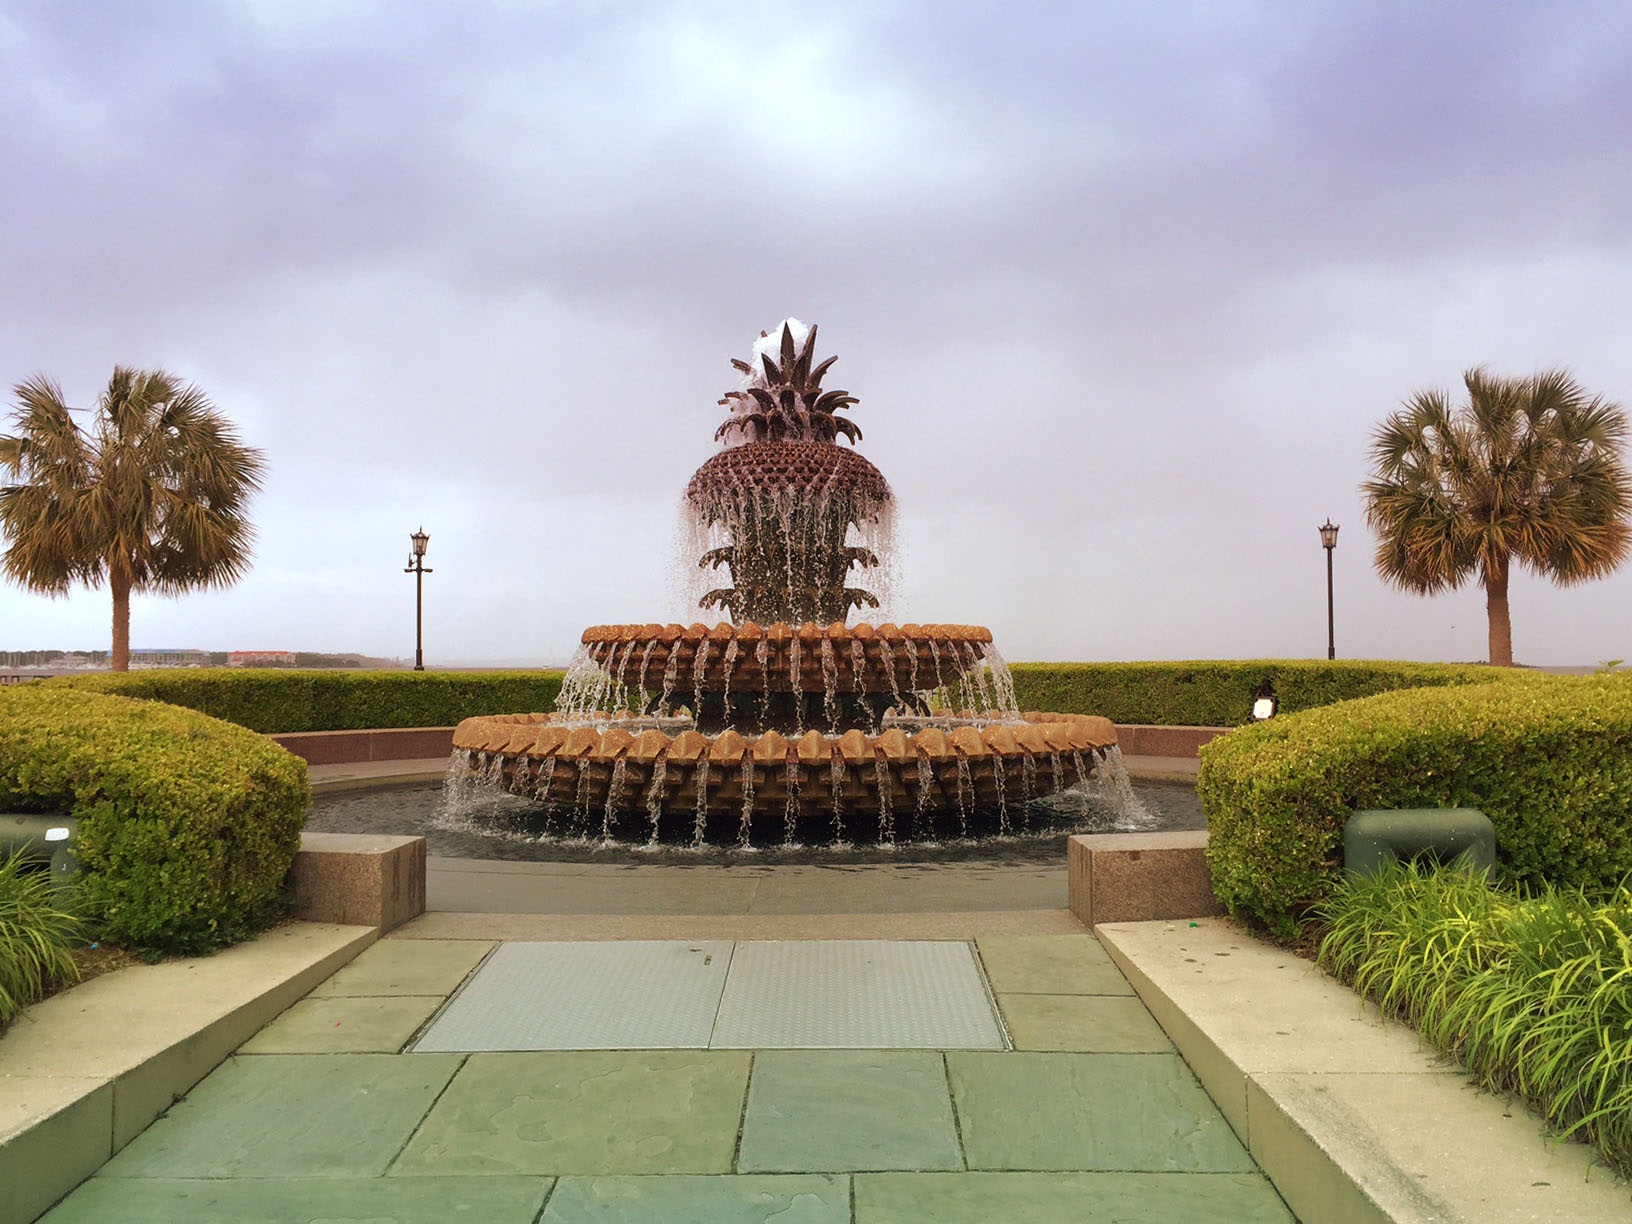 pineapple-fountain-downtown-charleston-south-carolina